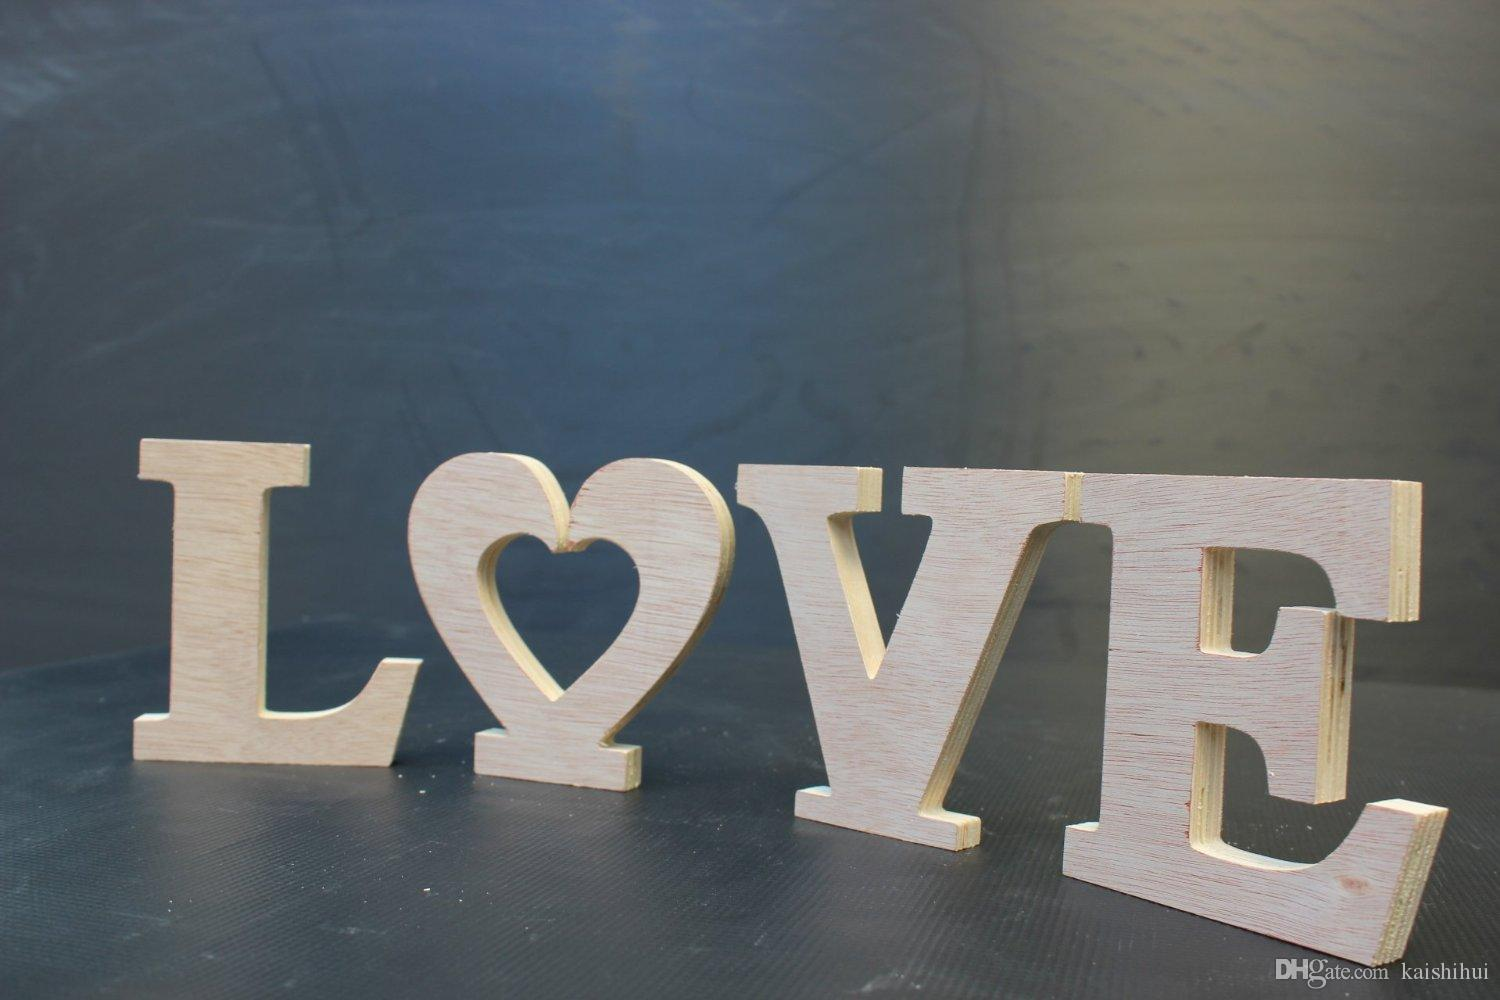 Letters Decoration Home U0026 Garden   Wooden Plaque Words, Letters Free  Standing LOVE Home, Wedding Decoration 10cm Height Wood Color Freestanding  Table ...